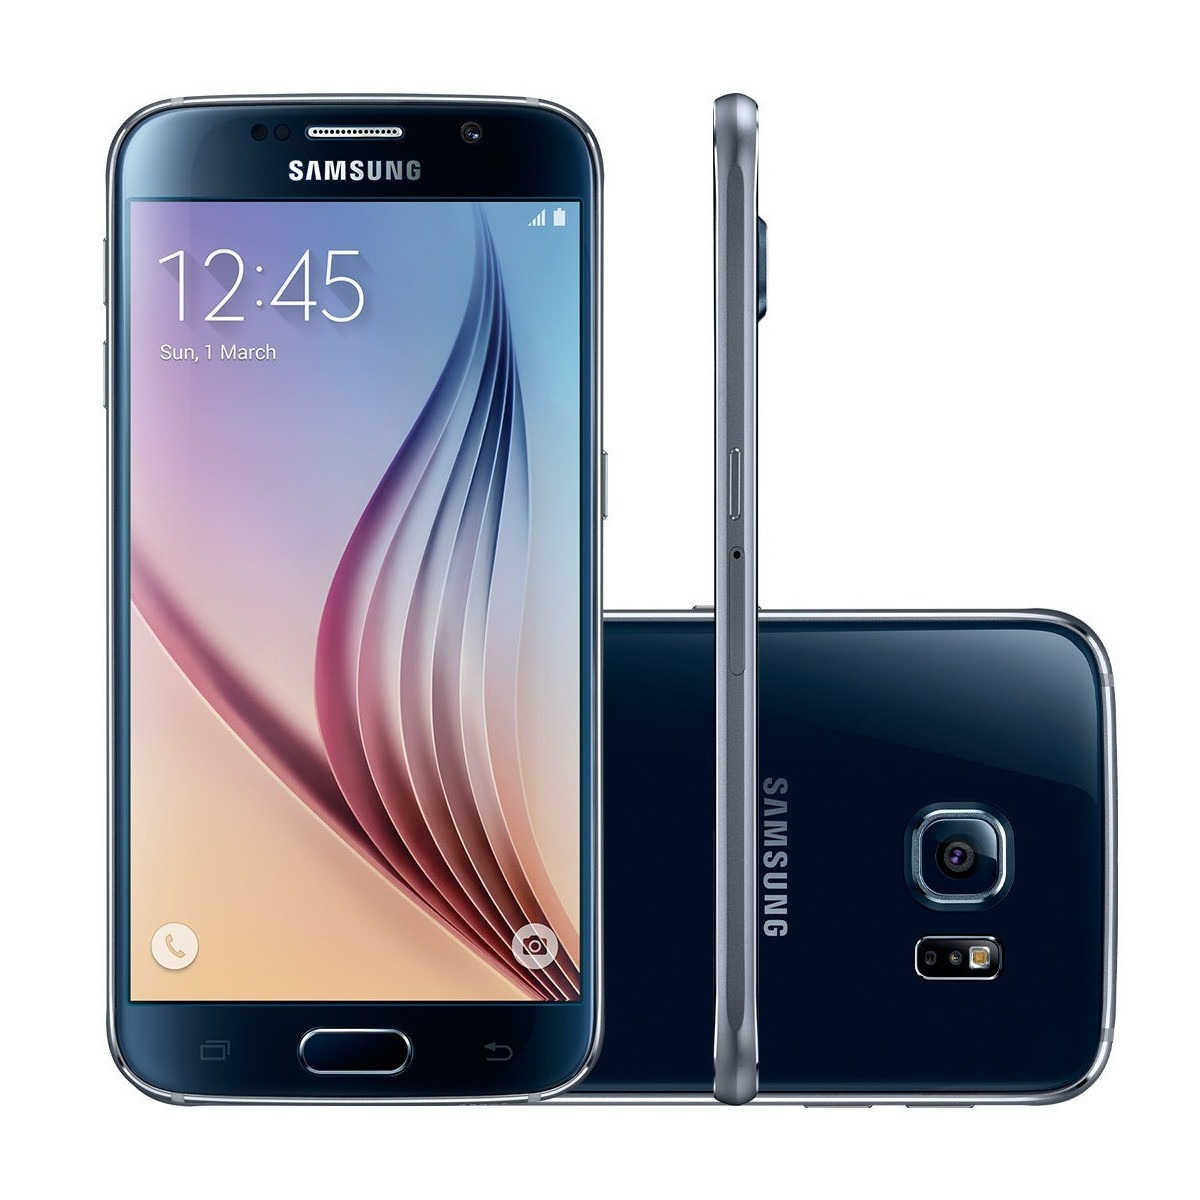 Celulares Samsung Precios Mercado Libre Celular Samsung Galaxy S6 32gb 16mp Azul Power Bank